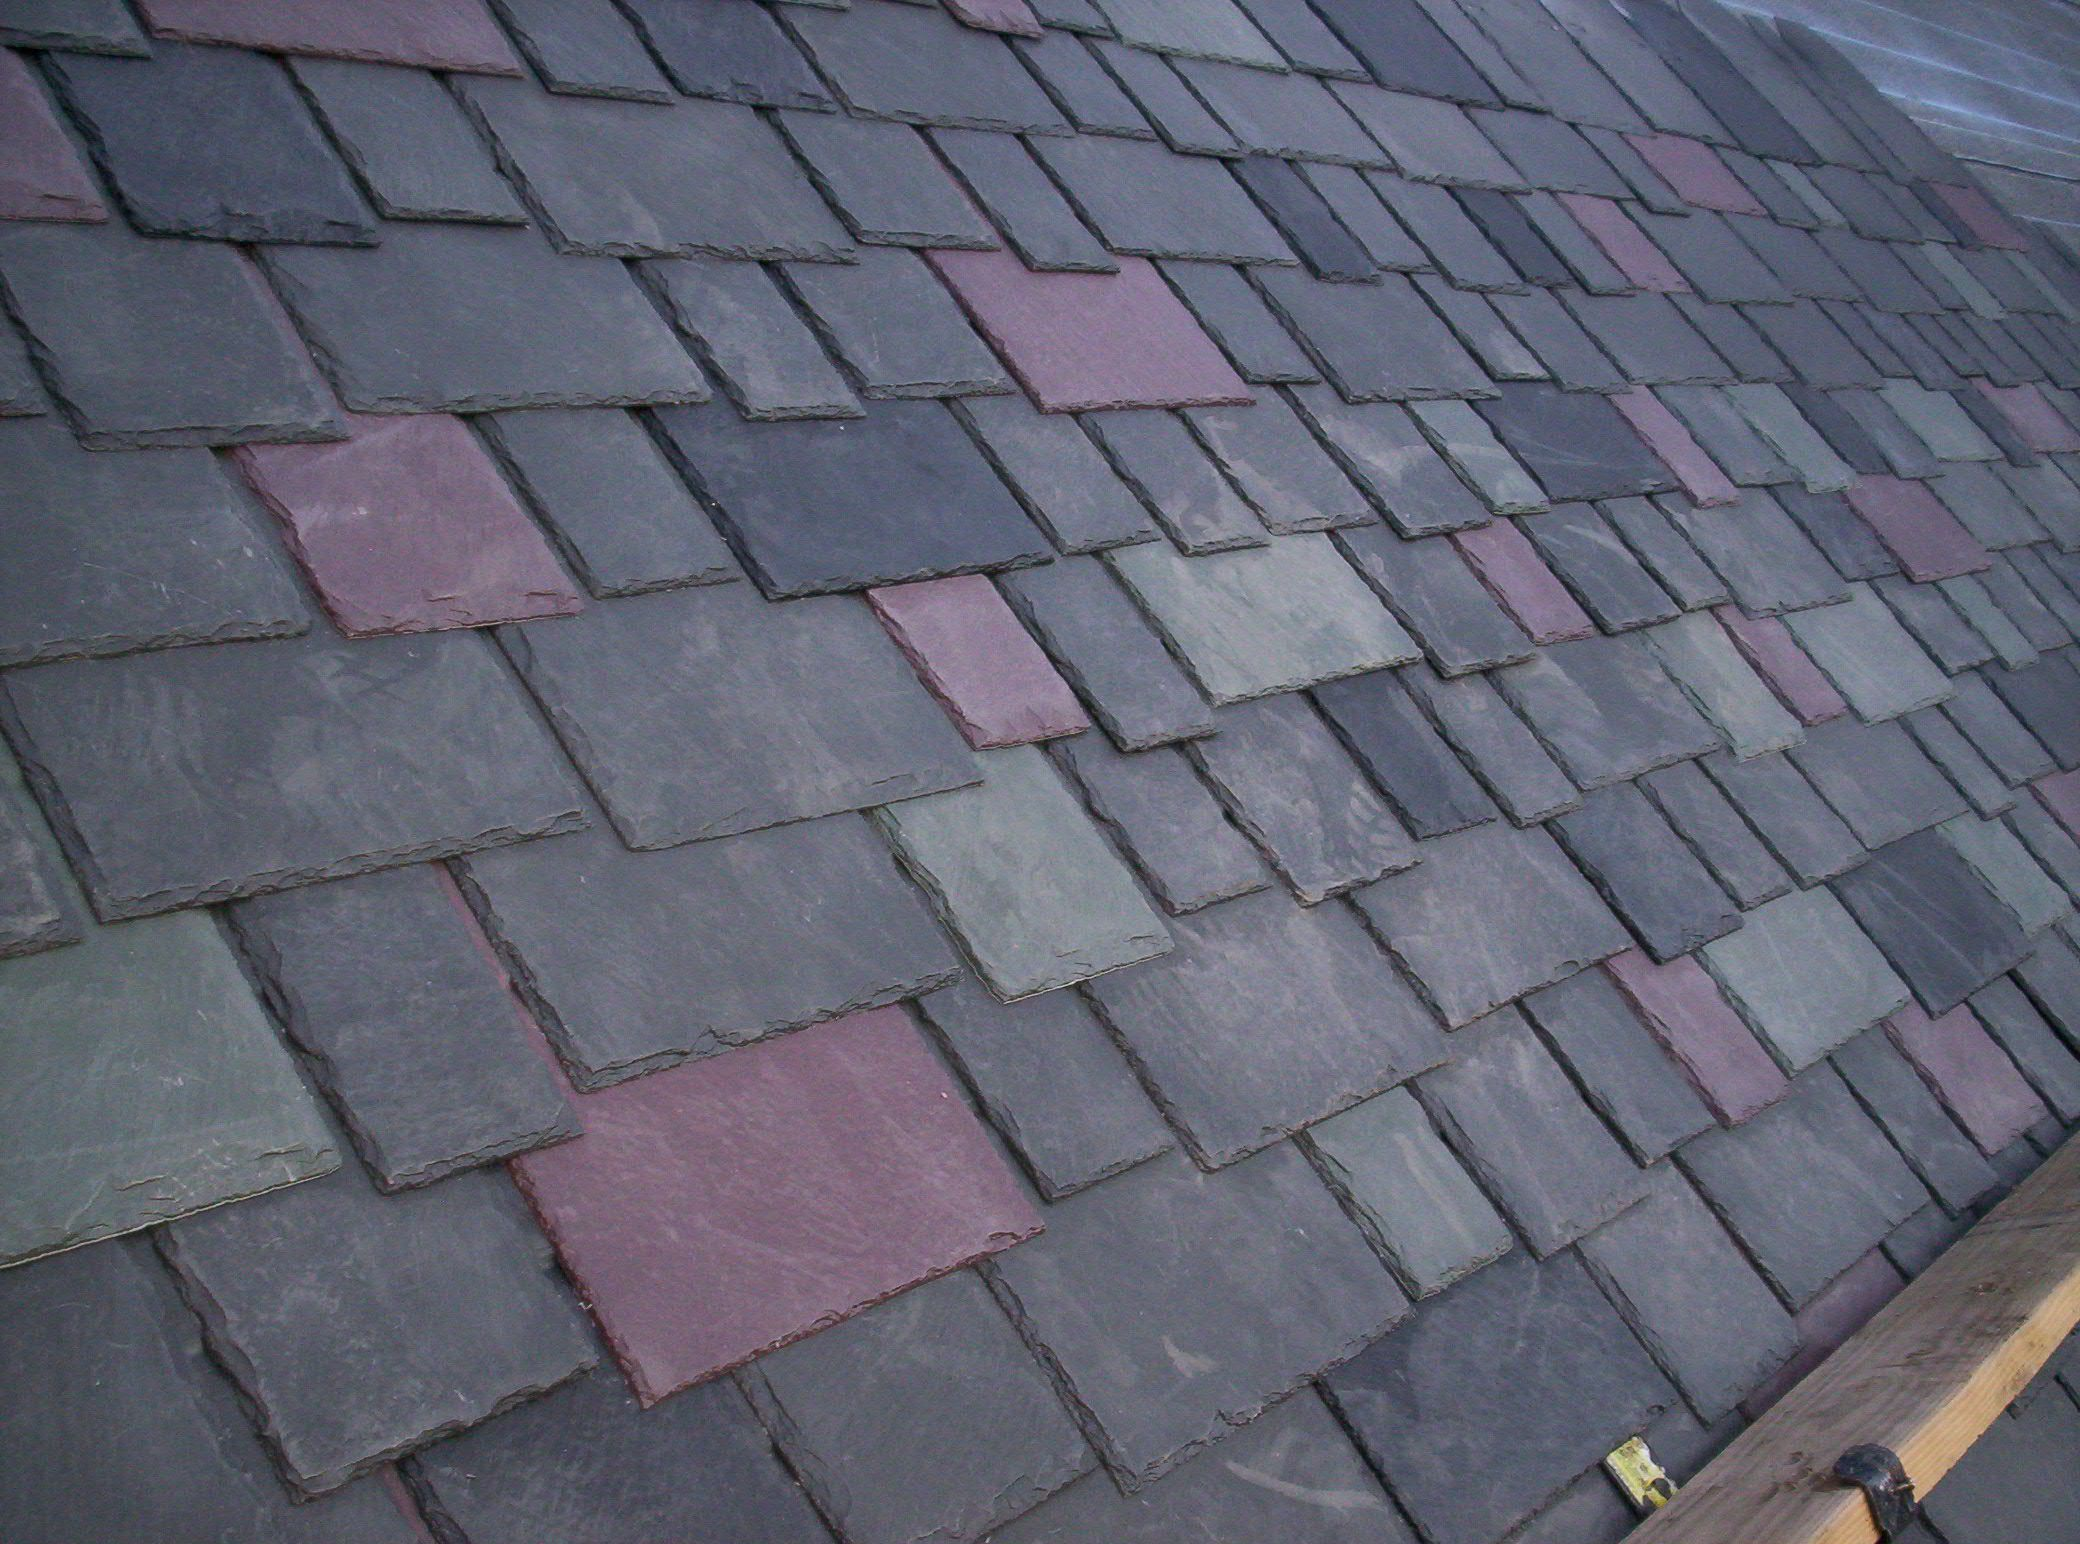 Slate Roof Slate Roof Tiles Roofing Materials Roofing